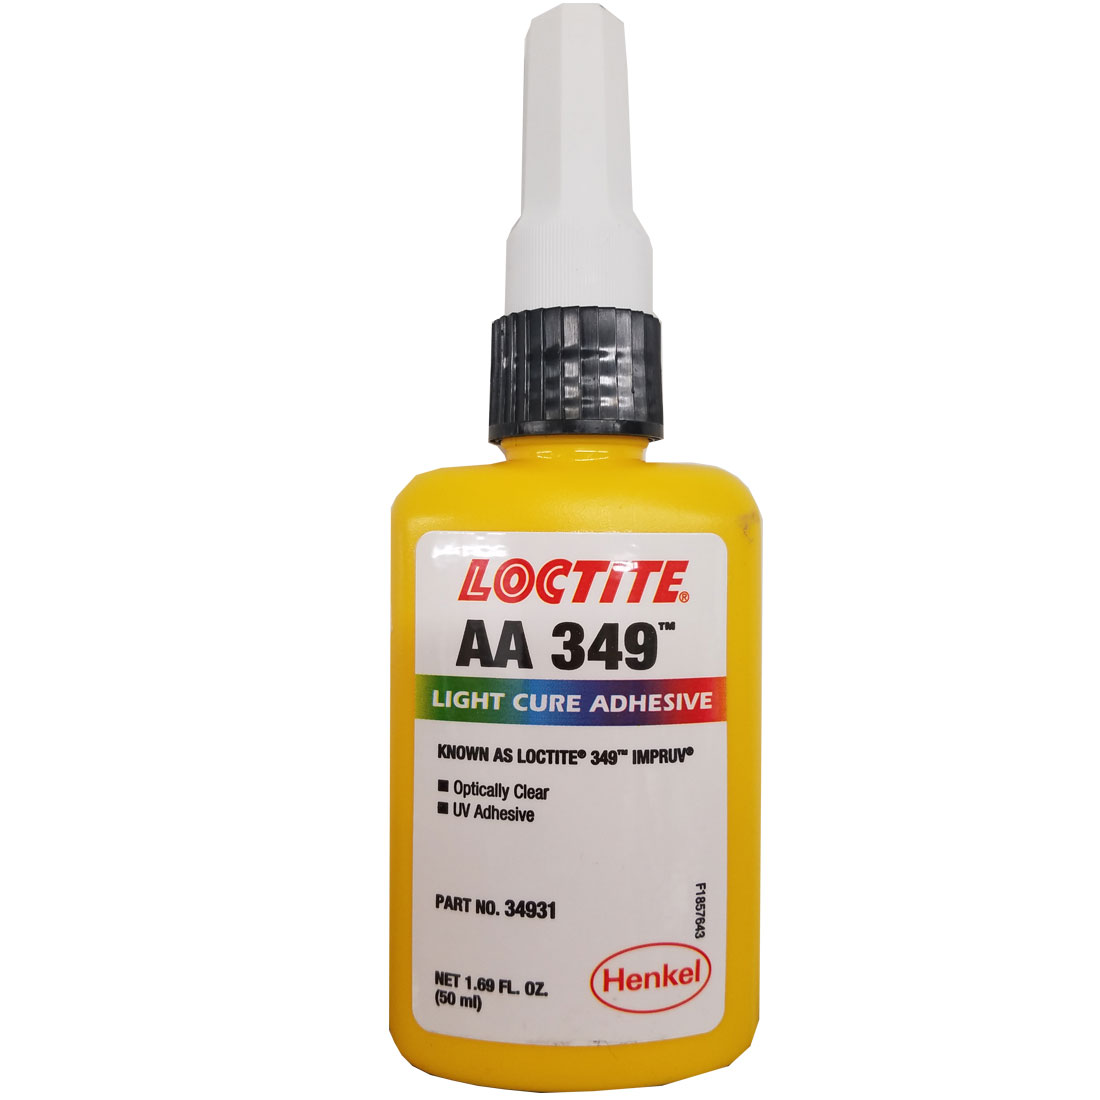 58208a4b68d8 Loctite 349 Uv Glue - 50ml - 52270 - Adhesive For Glass - Tools - by ...